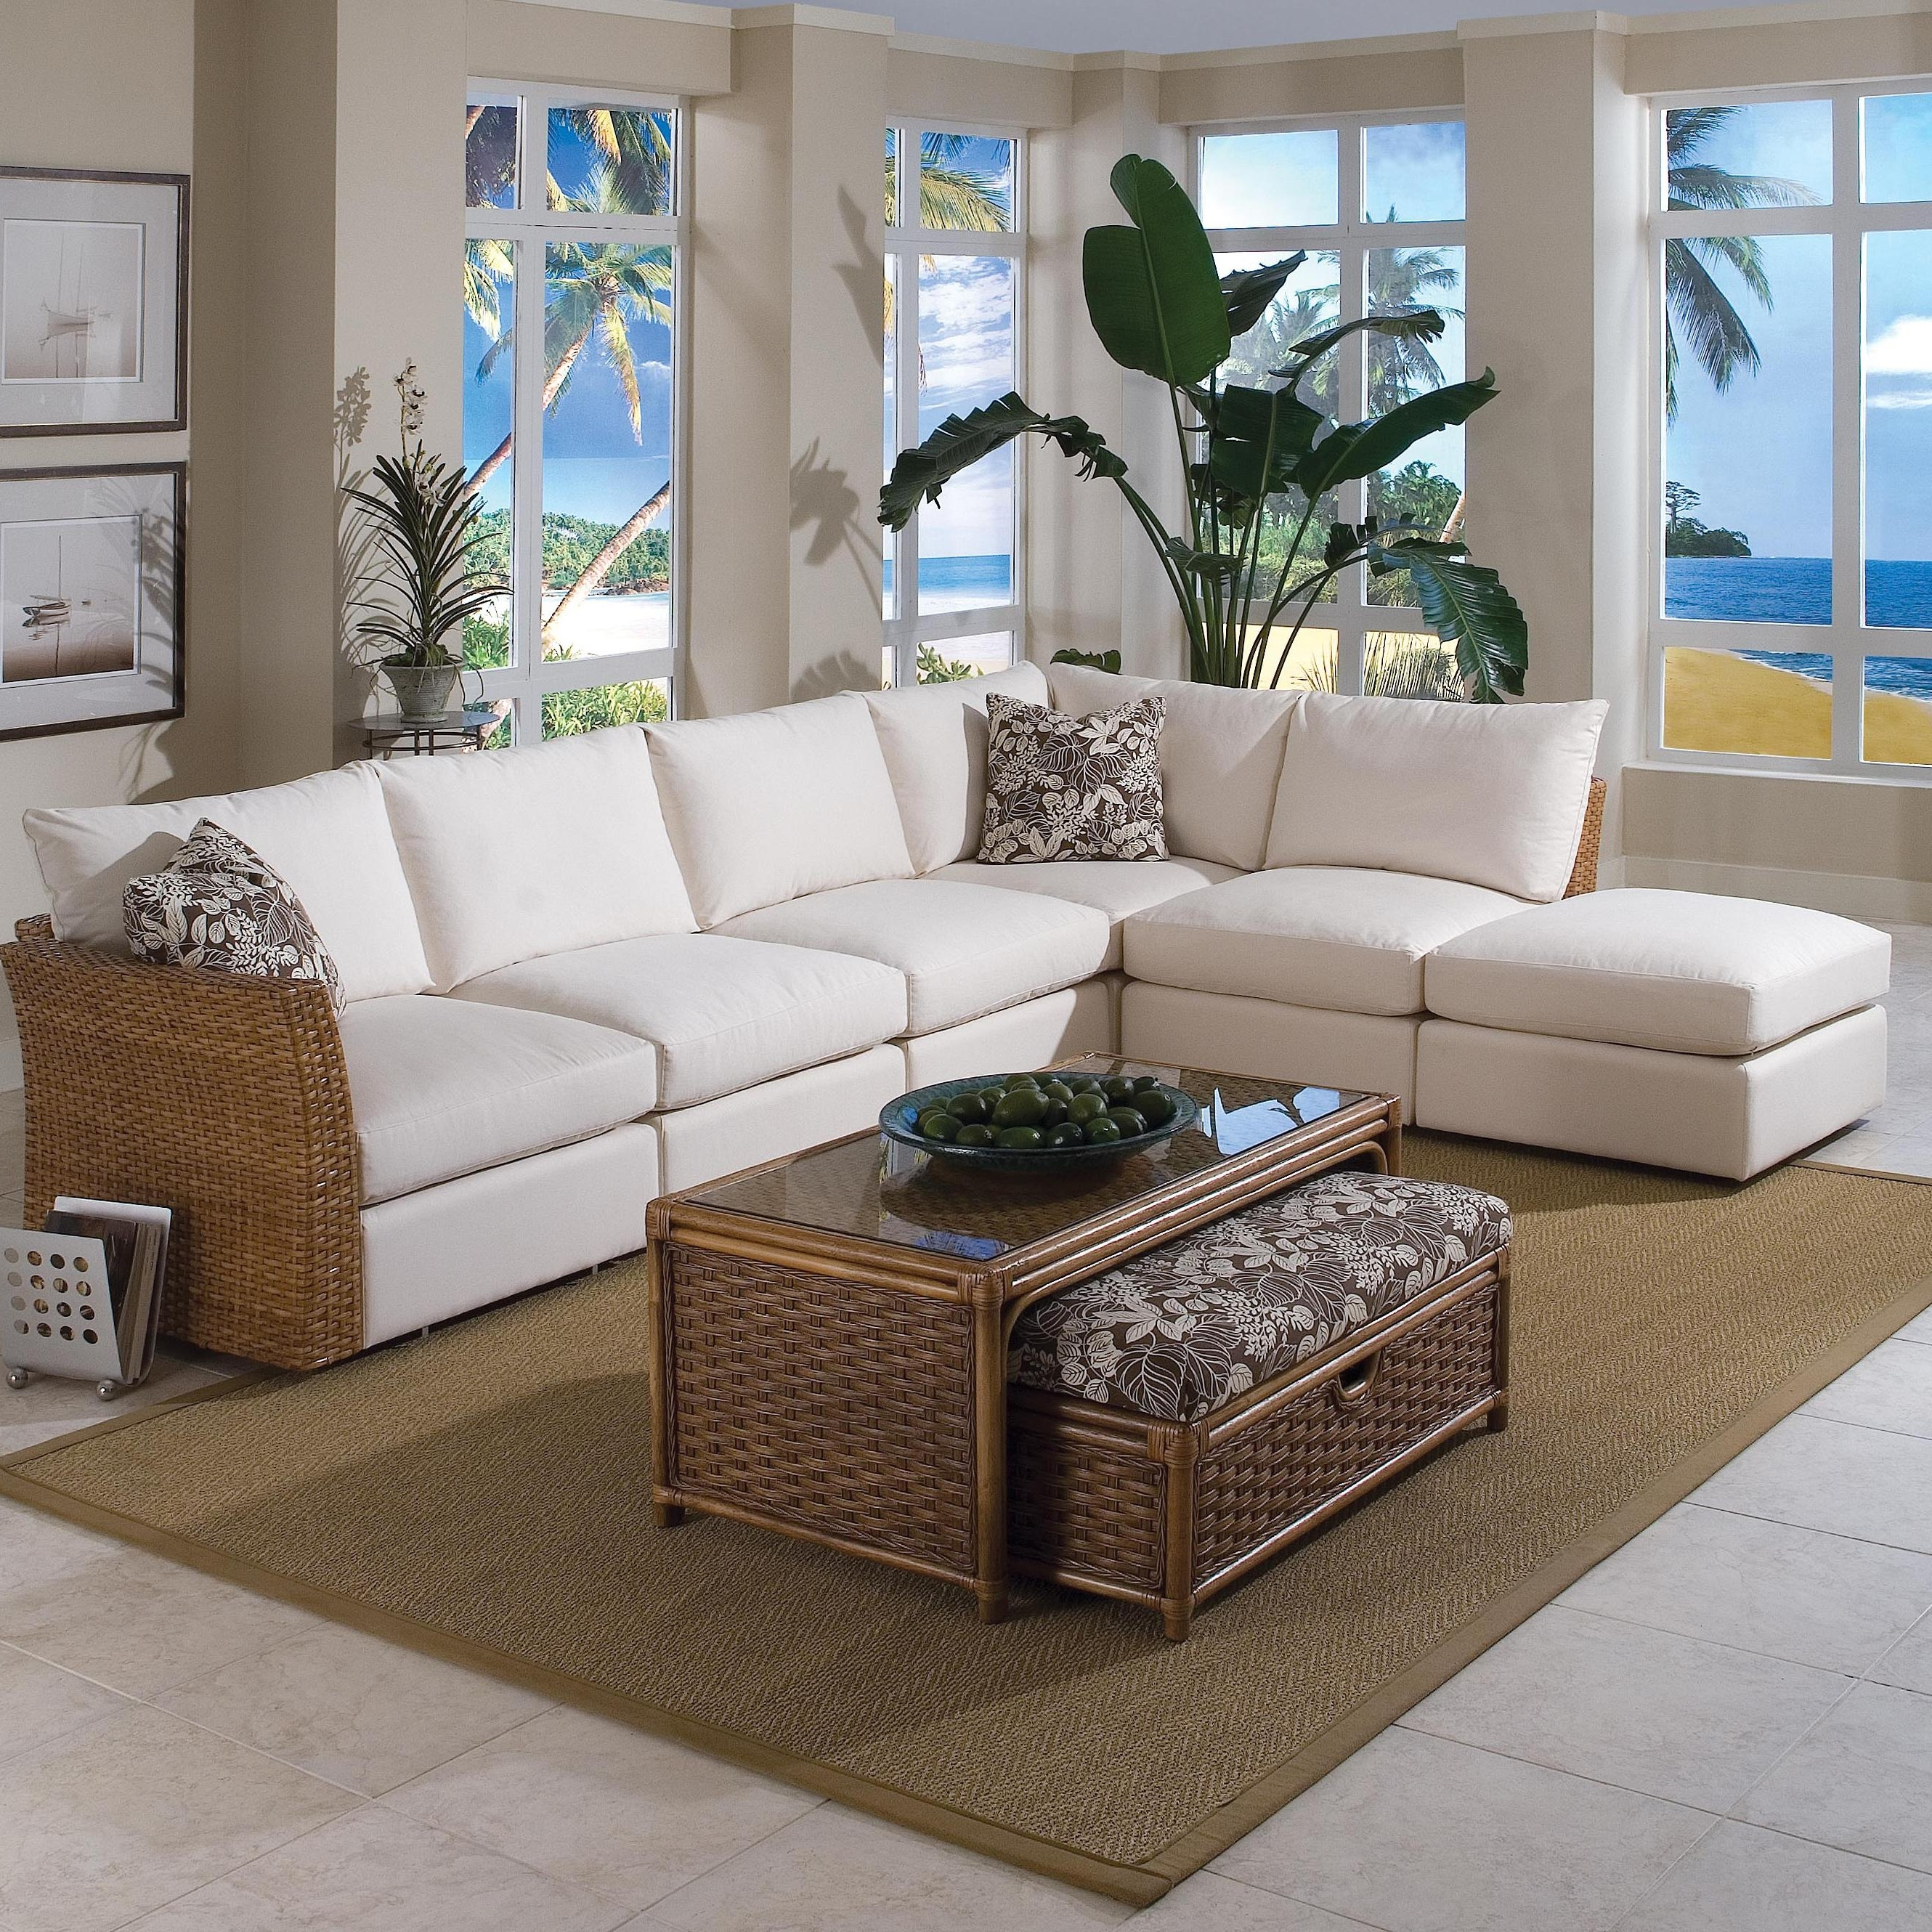 Most Recent Braxton Sectional Sofas For Braxton Culler Grand Water Point Tropical Sectional Sofa With Two (View 3 of 15)